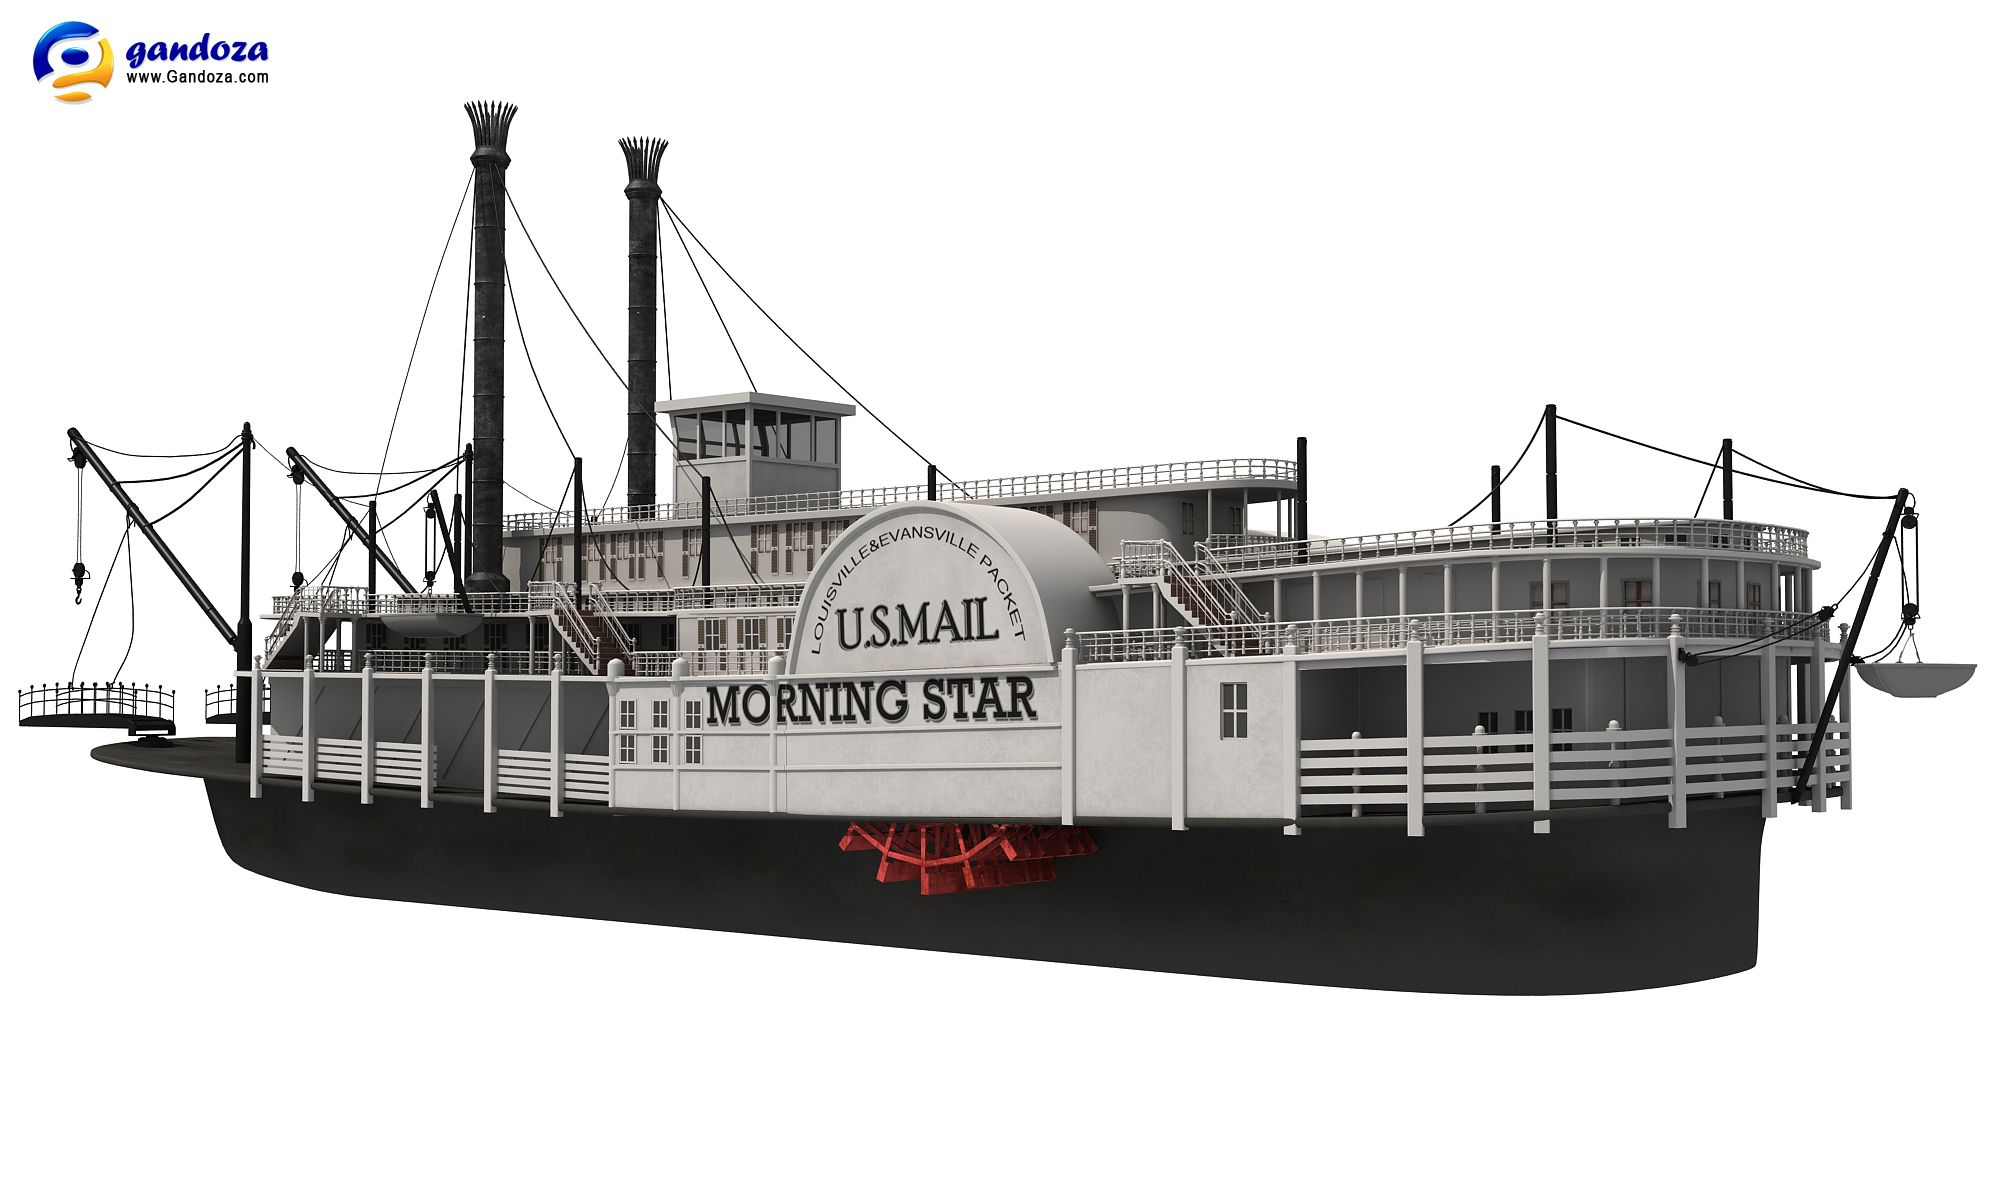 Realistic Model Of Old Paddle Wheel Steam BoatComes With Detailed Texture Up To 6100 X Pixels For Main BoatNative Format Is MaxThe Max File Come